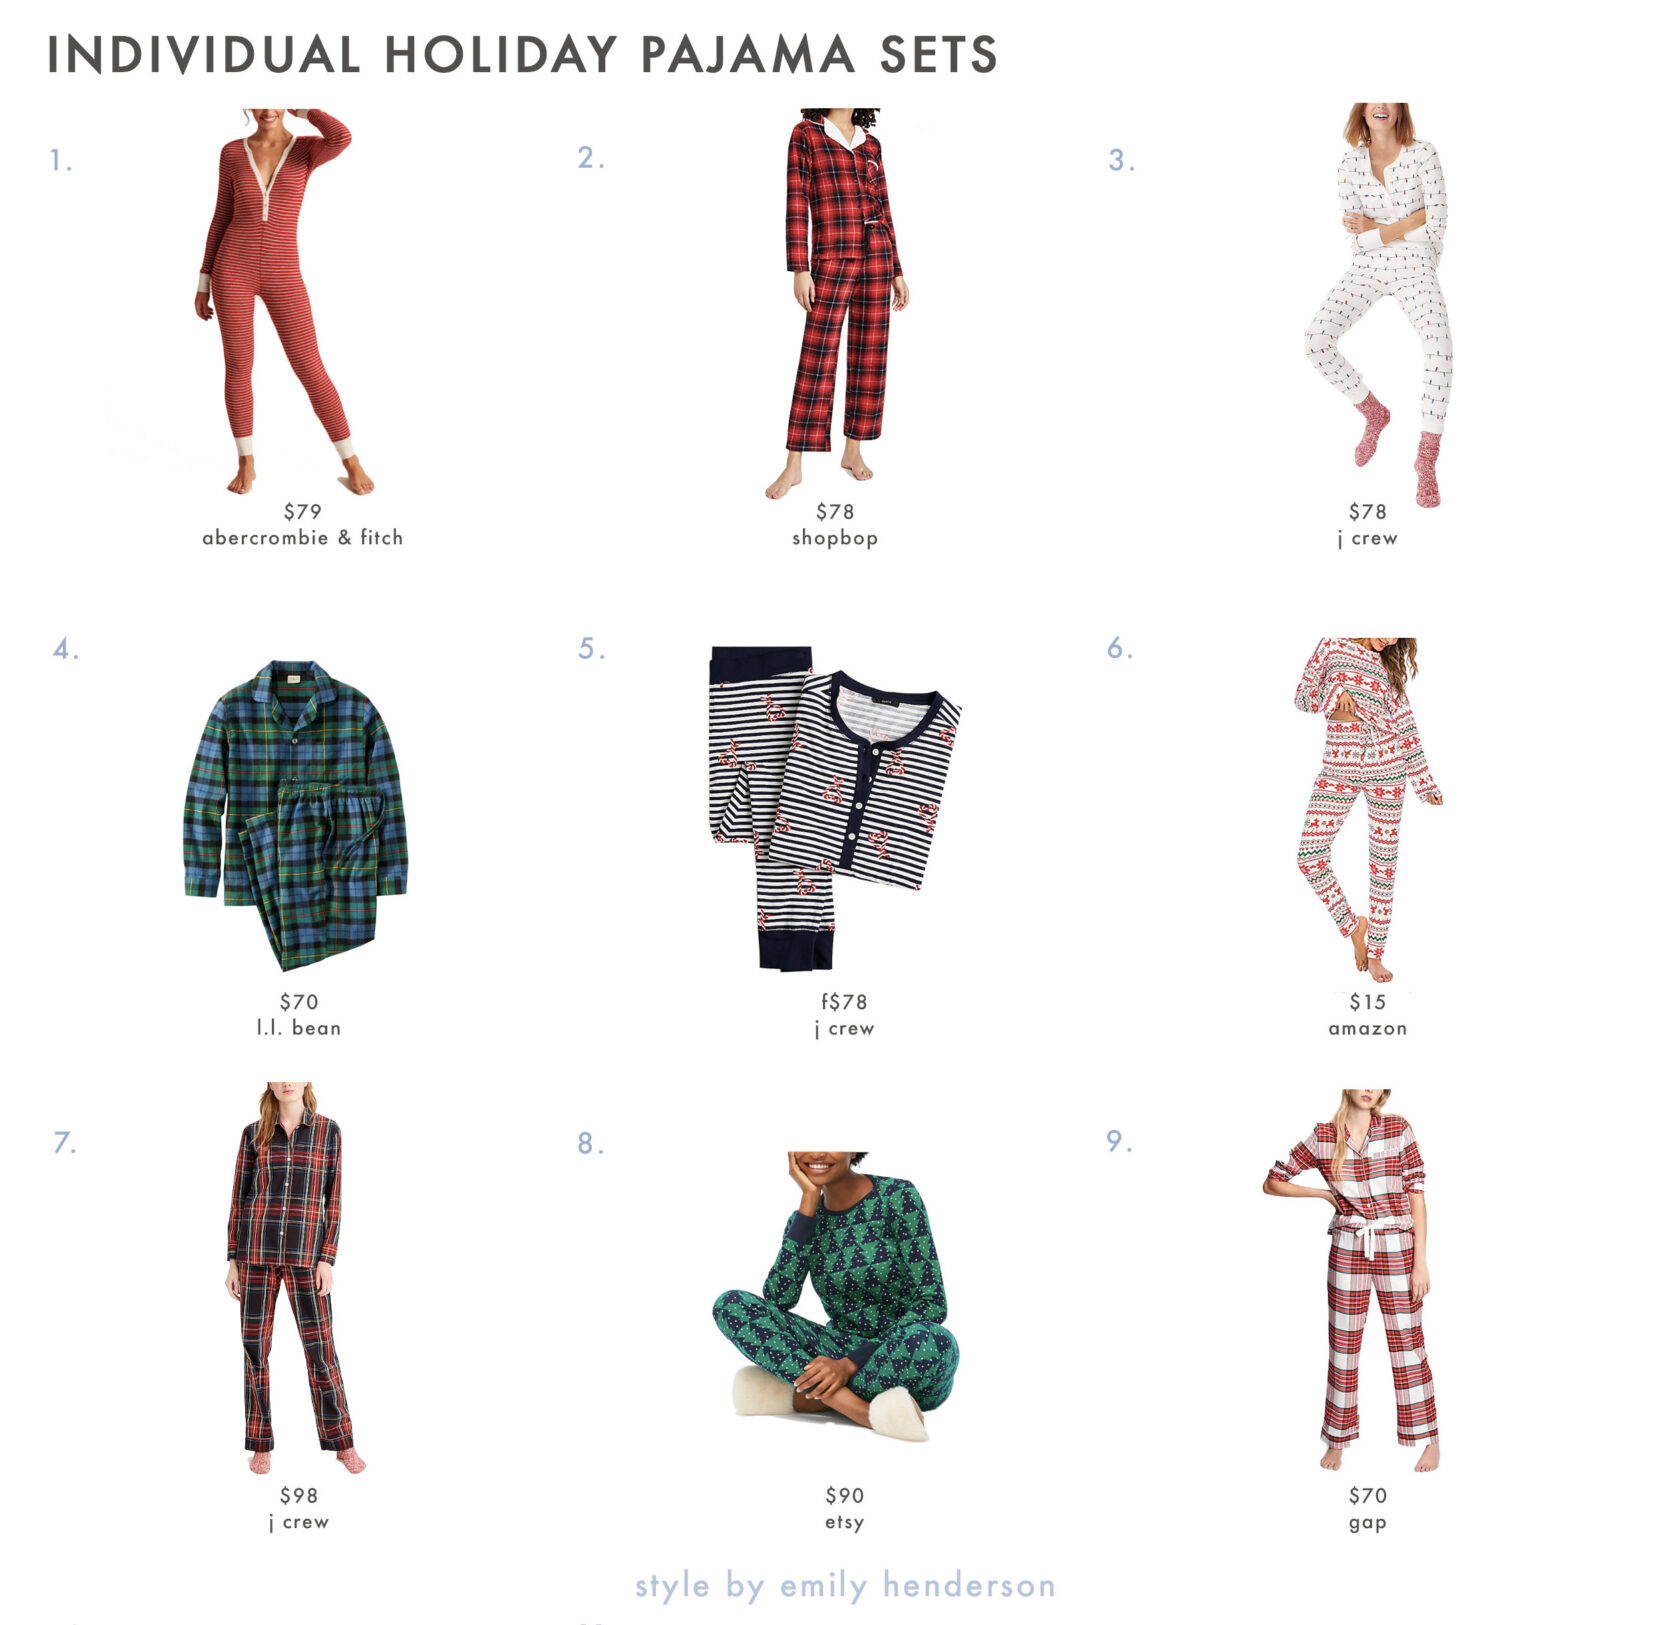 If You Haven't Bought Your Family (Or Yourself) Matching Holiday Pajamas Yet, Now's Your Chance Best Children's Lighting & Home Decor Online Store